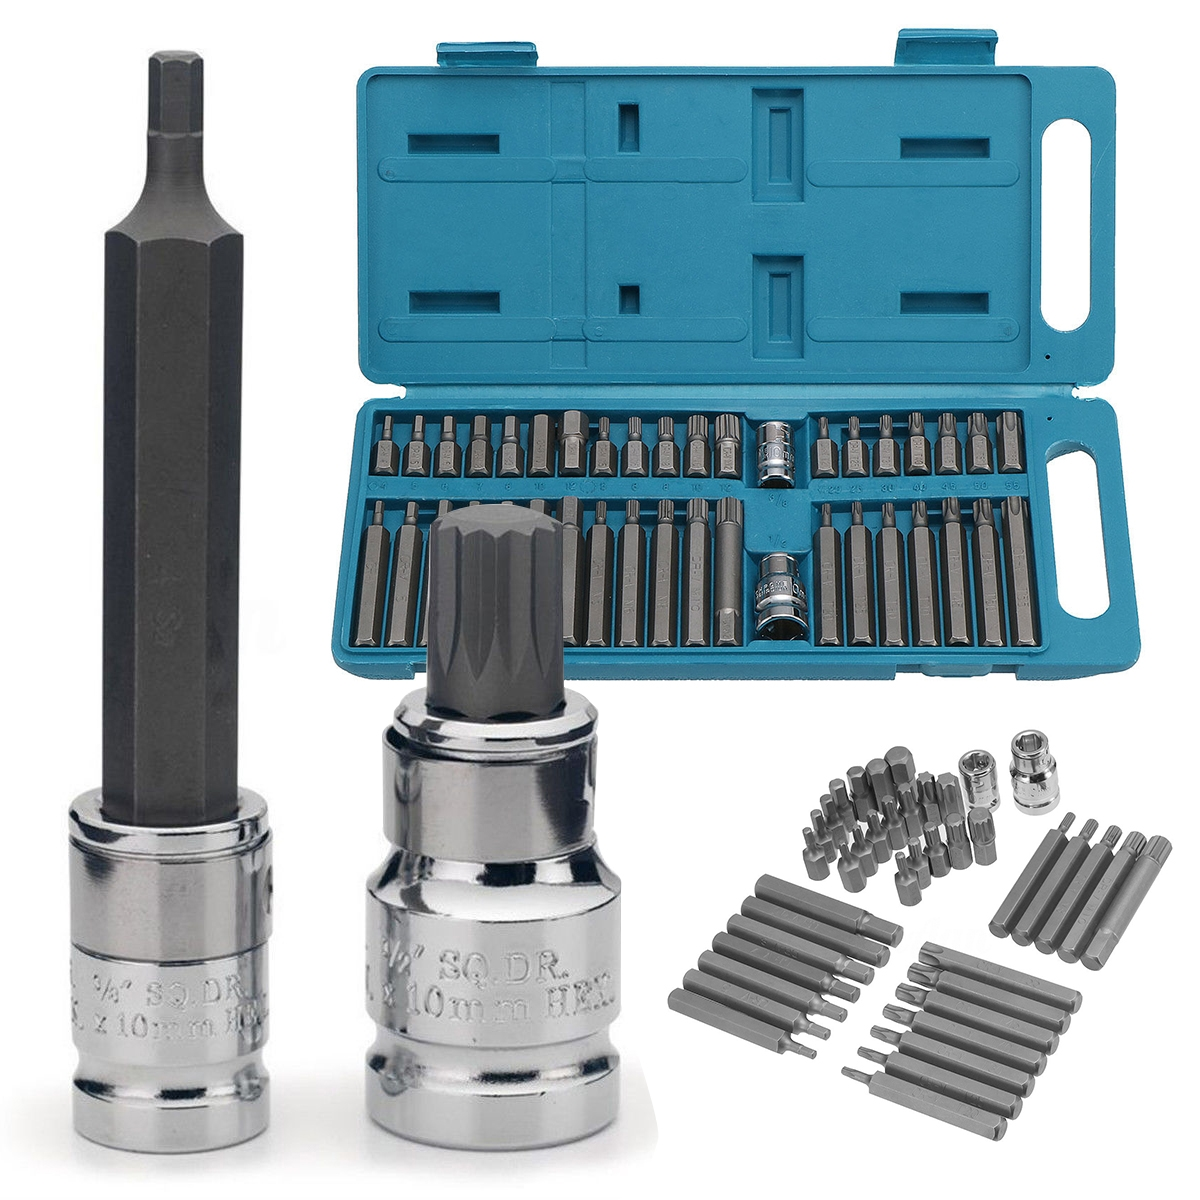 40Pcs 1/2'' 3/8'' Adaptor Drive Shank Hex Torx XZN Spline Star Impact Socket Set Metric Socket Set Ratchet Driver Socket Wrench mainpoint 1 4 1 2 3 8 e socket sockets set cr v torx star bit combination drive socket nuts set for auto car repair hand tool